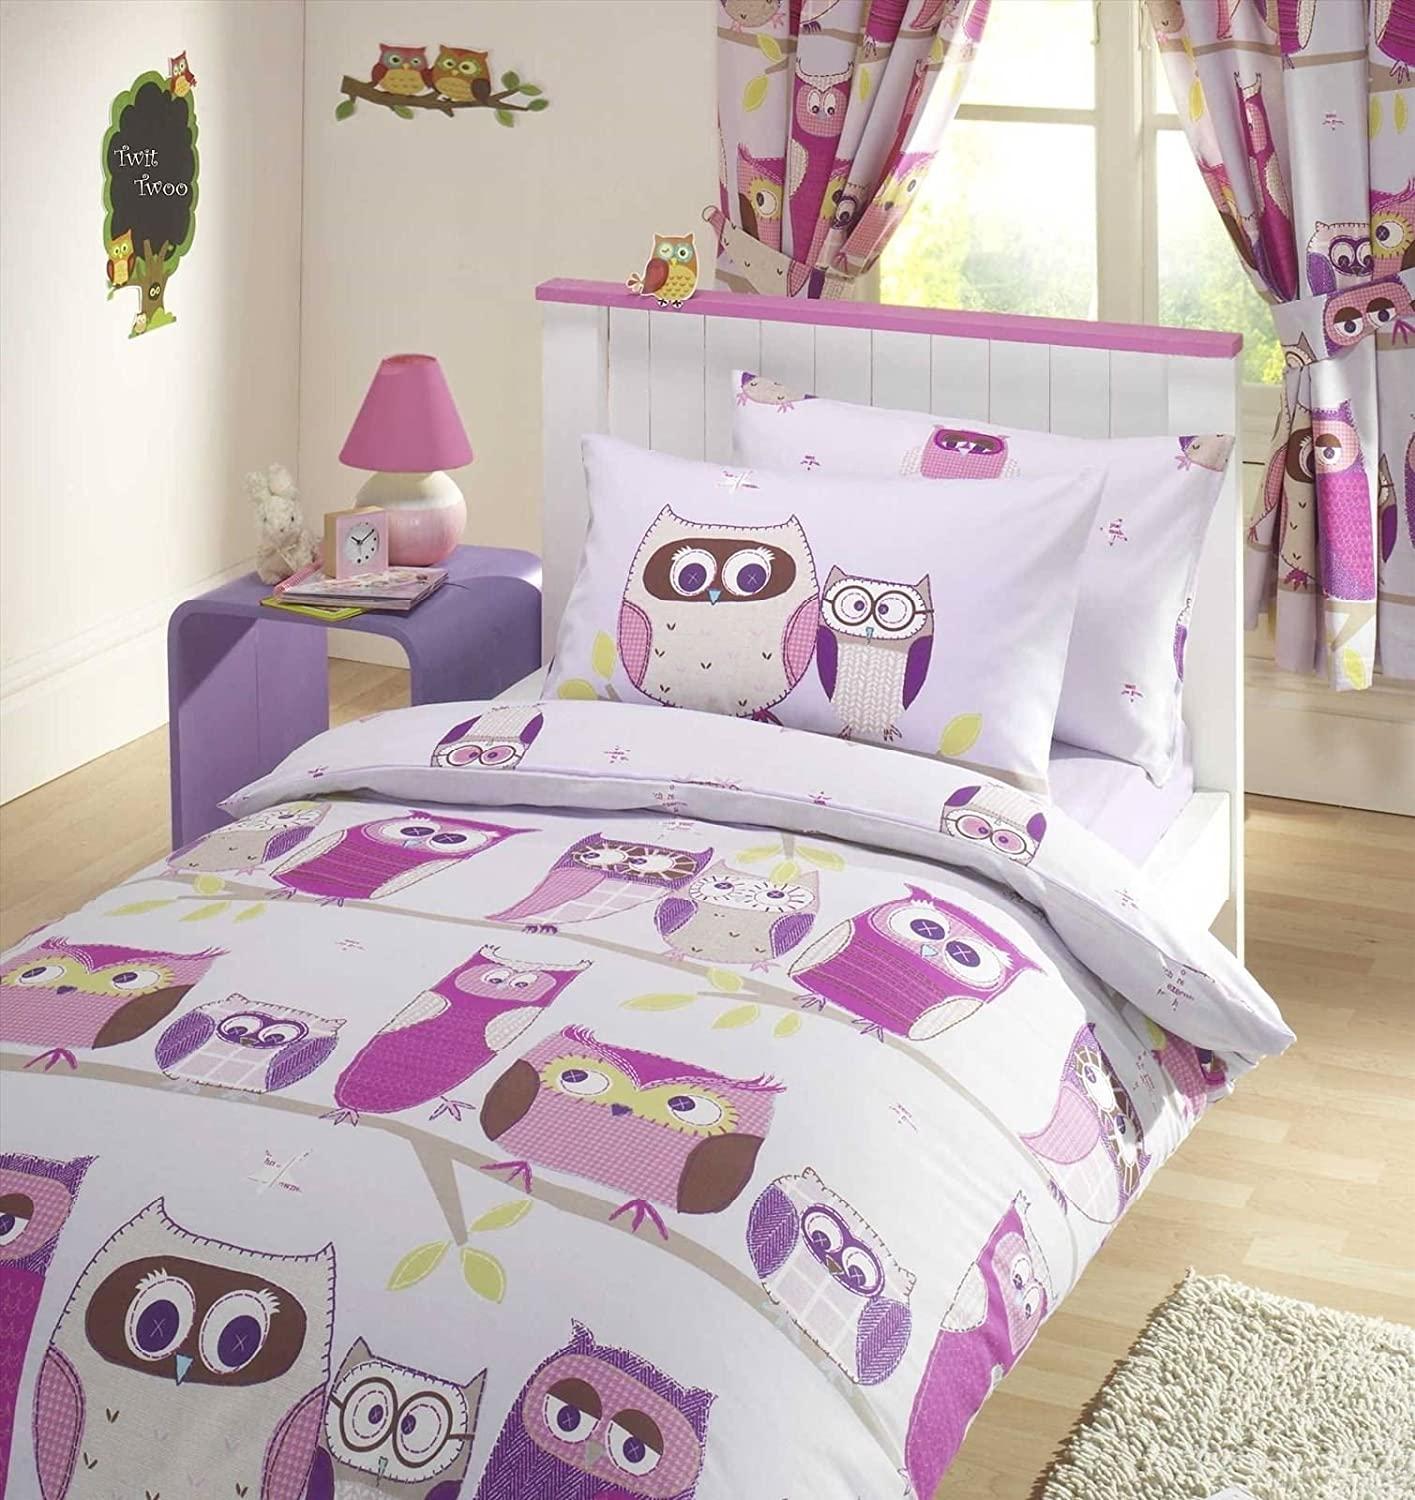 Owl Bedroom Curtains Hoot Owl Lilac Duvet Cover Set Single Amazoncouk Kitchen Home